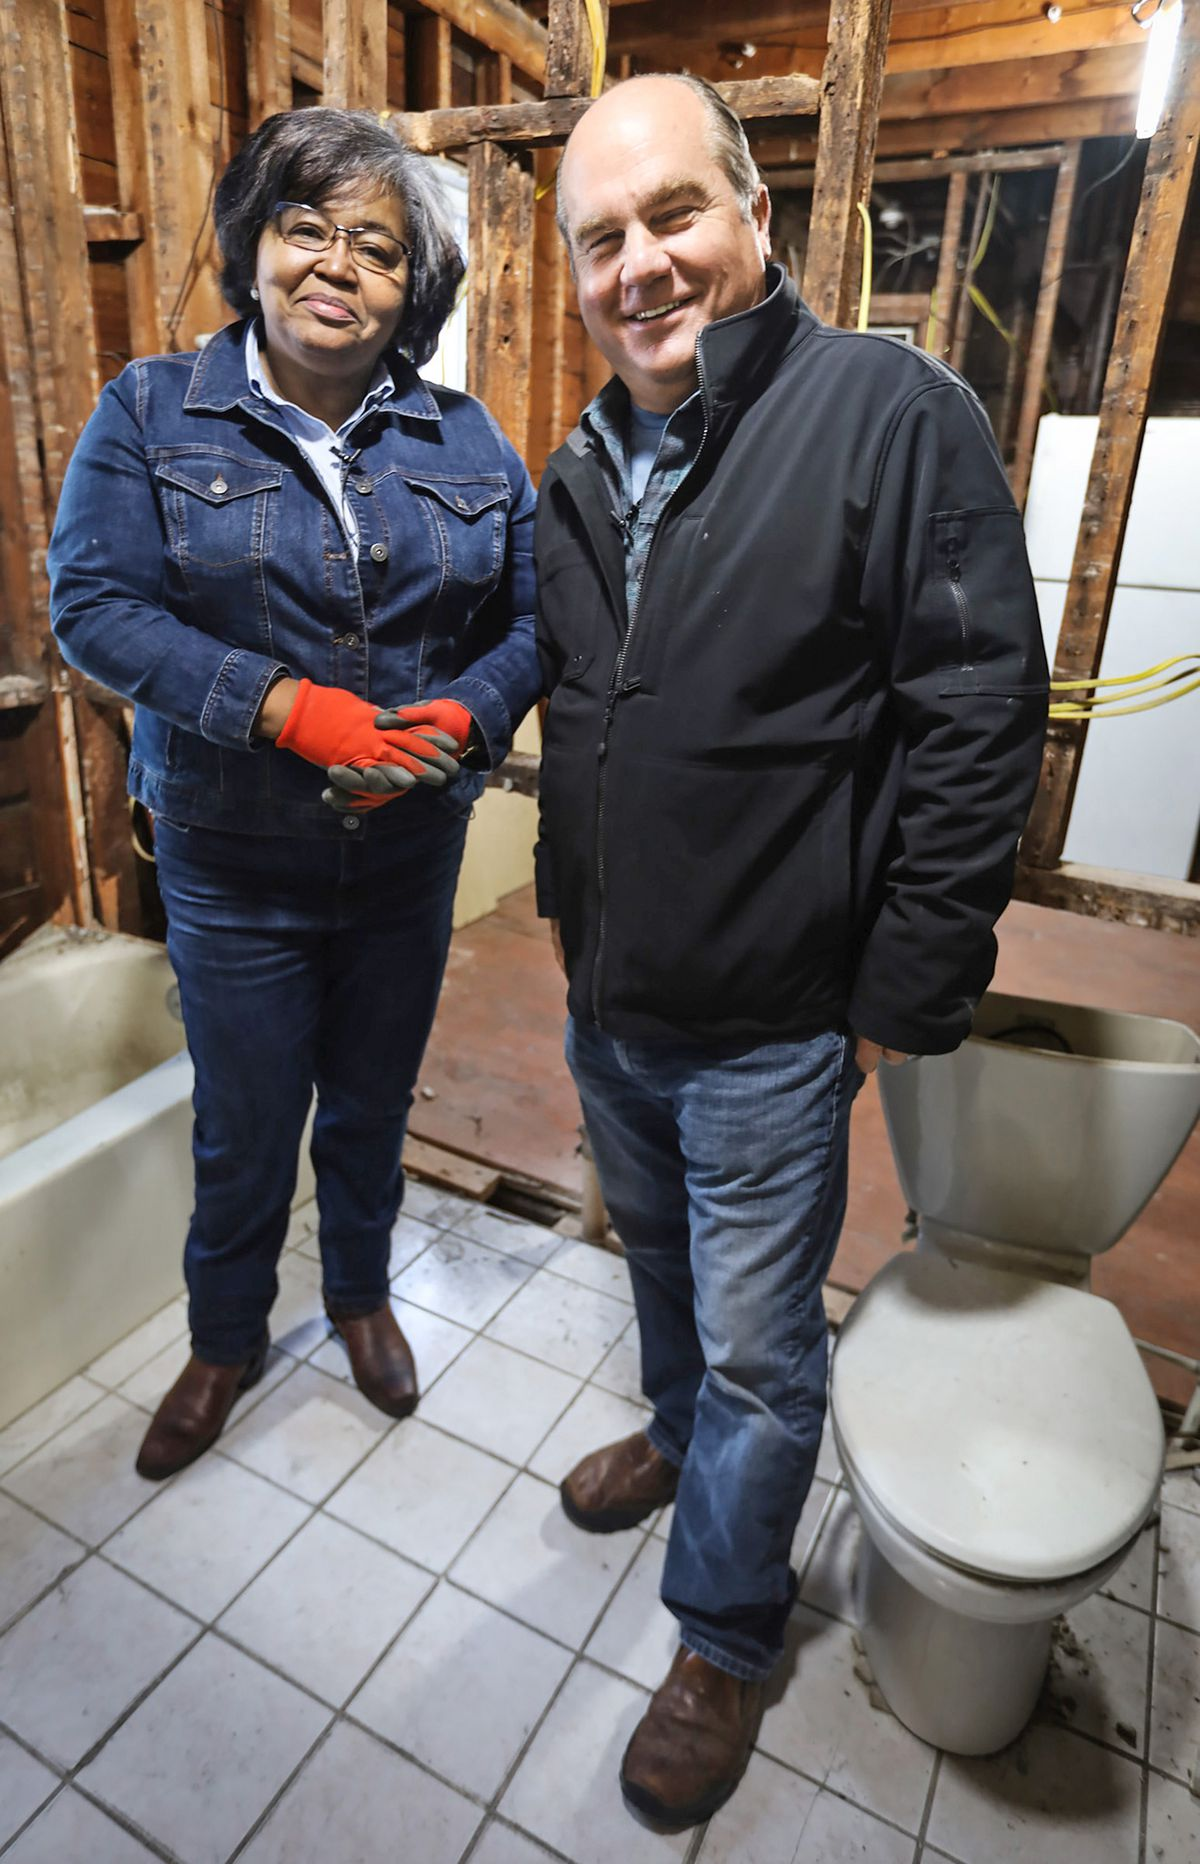 Spring 2021, Dorchester 1st look, Richard Trethewey and plumber Ronnette Taylor, a fire protection specialist